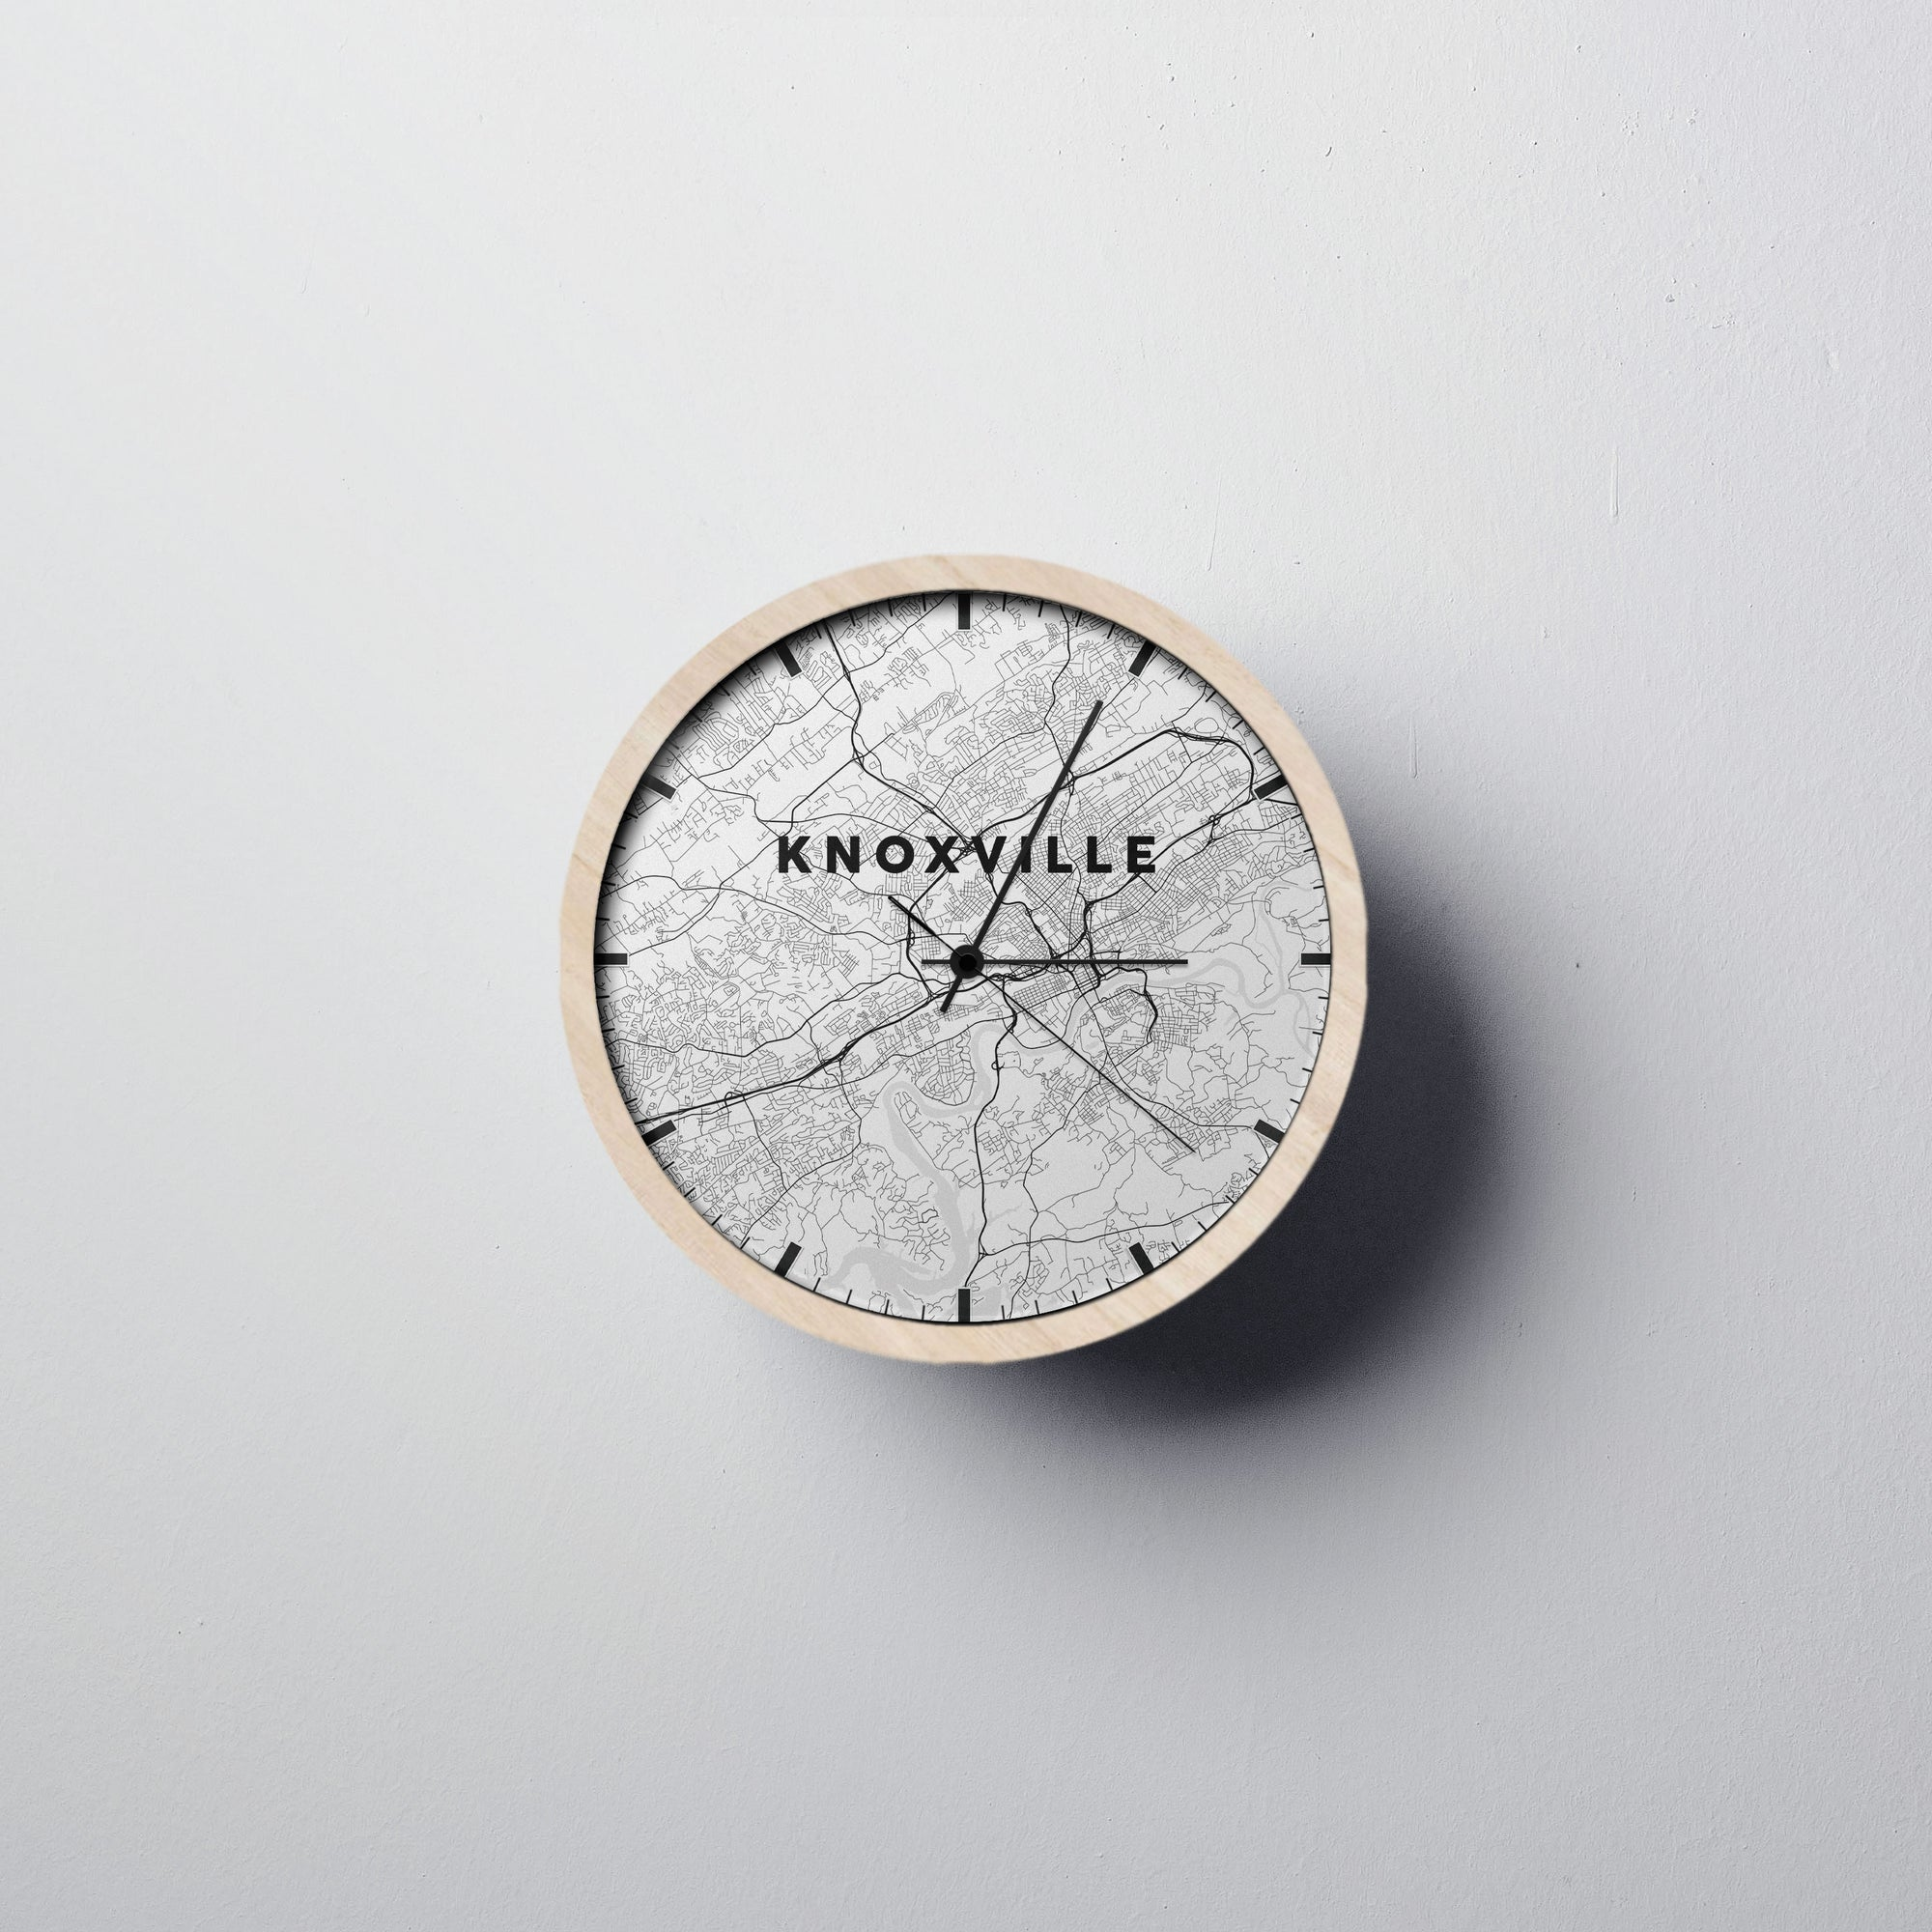 Knoxville Wall Clock